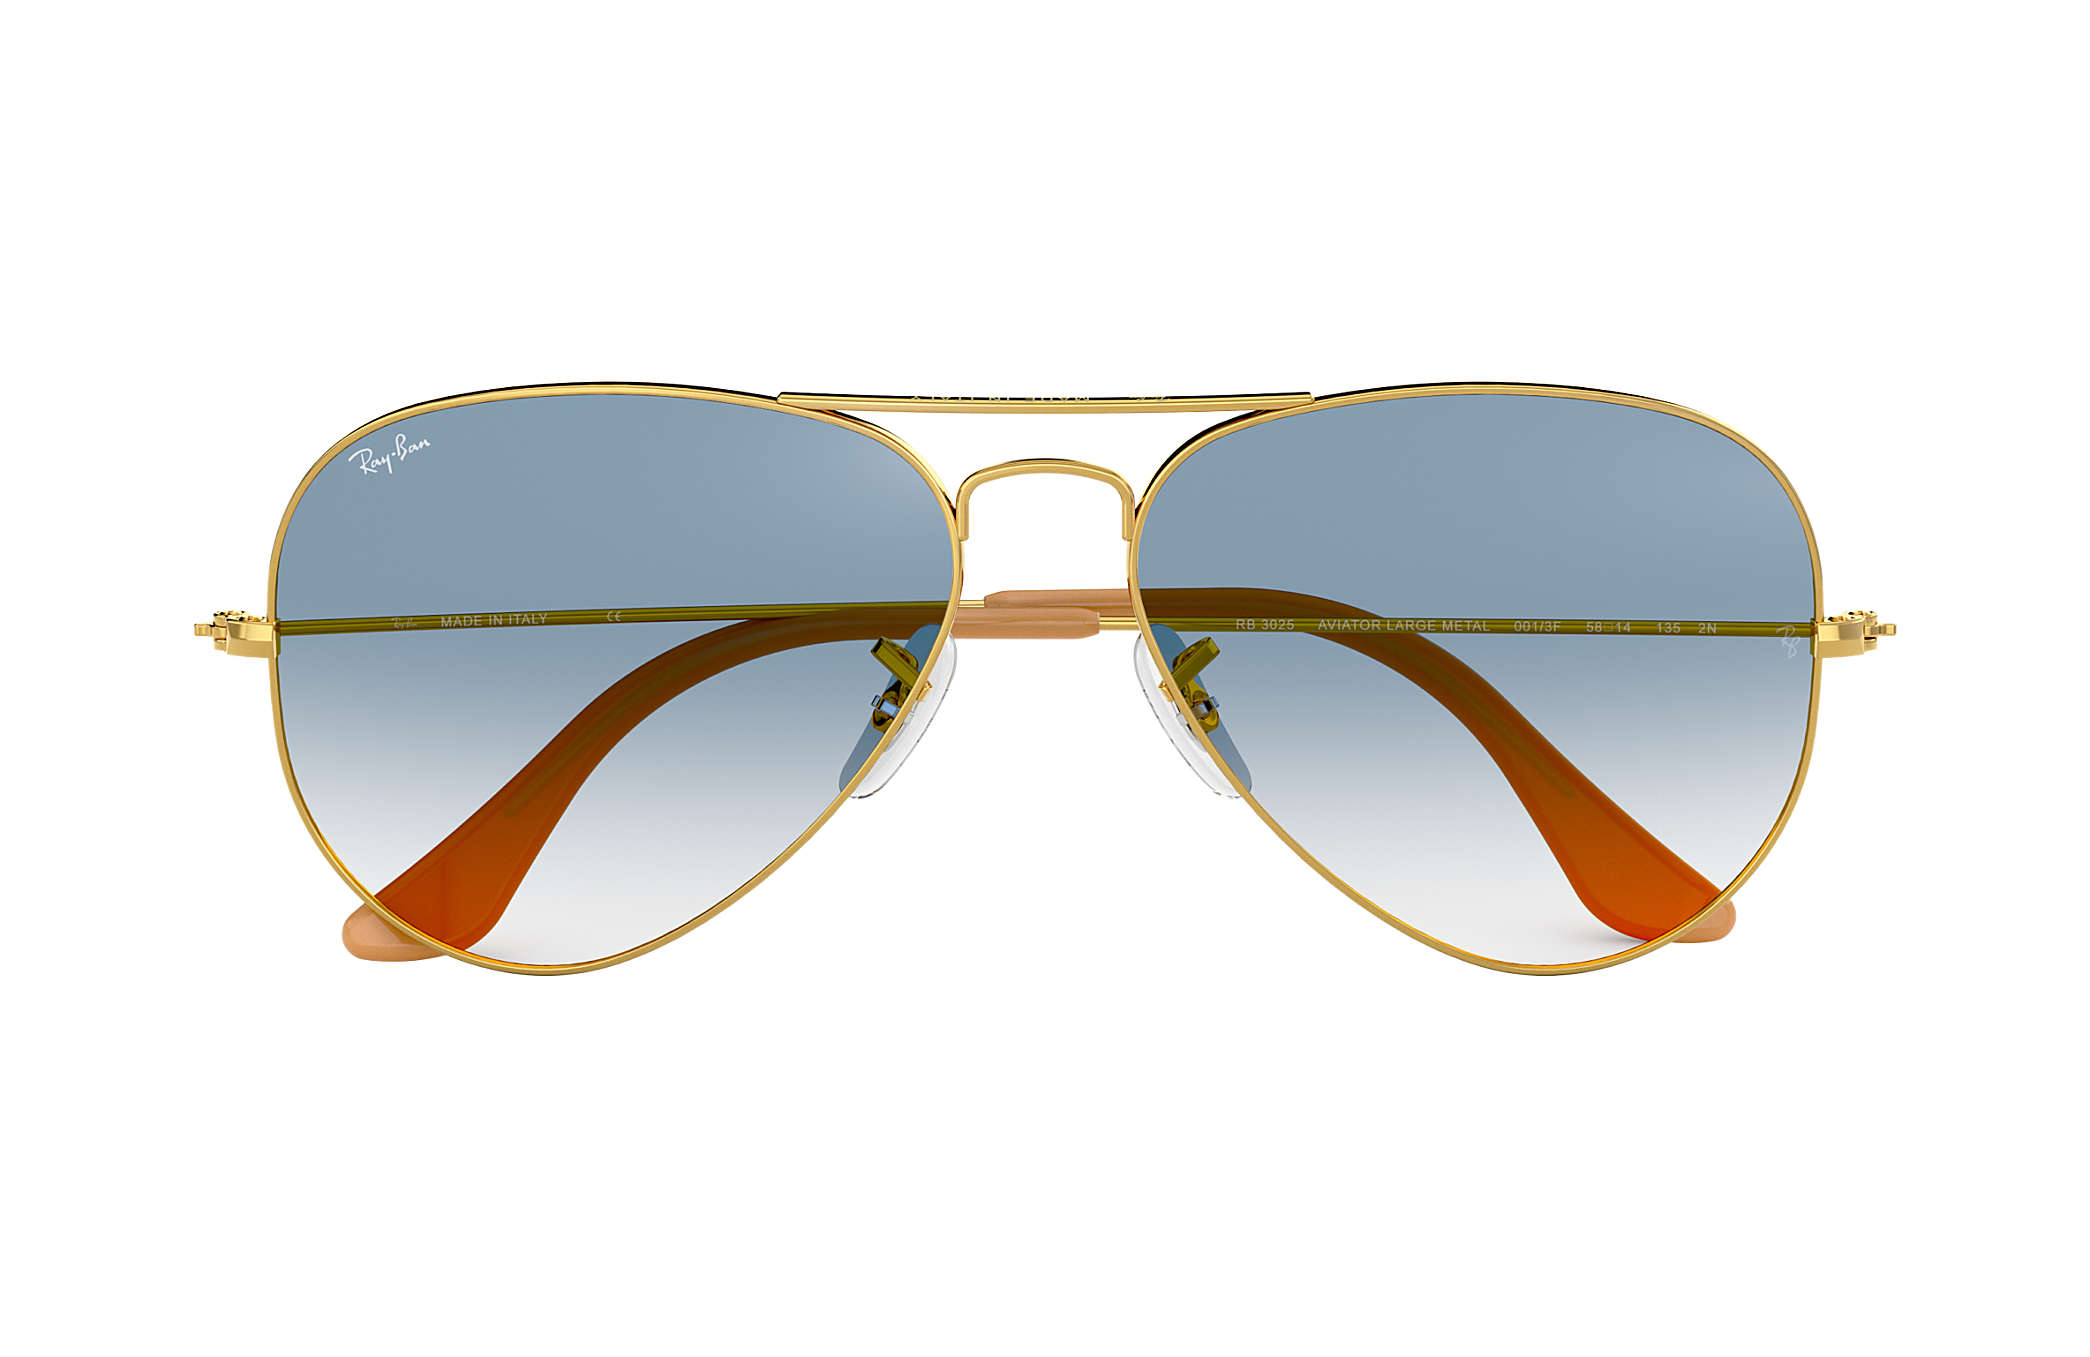 d226a07ae6f3 Ray-Ban Aviator Gradient RB3025 Gold - Metal - Light Blue Lenses ...